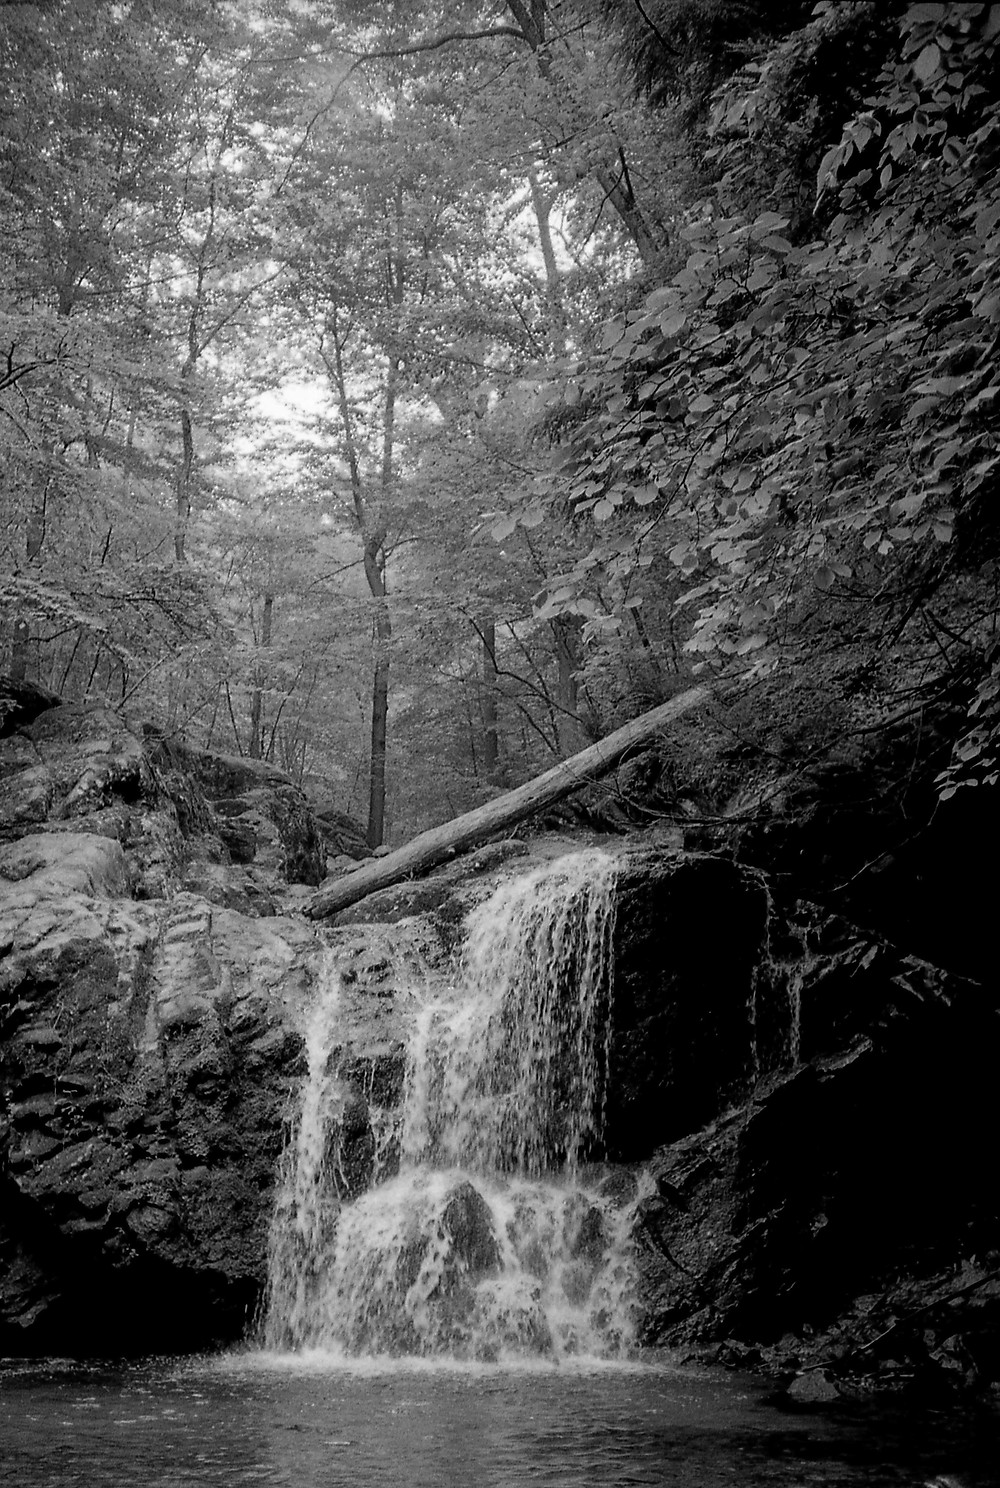 Waterfall in Maryland